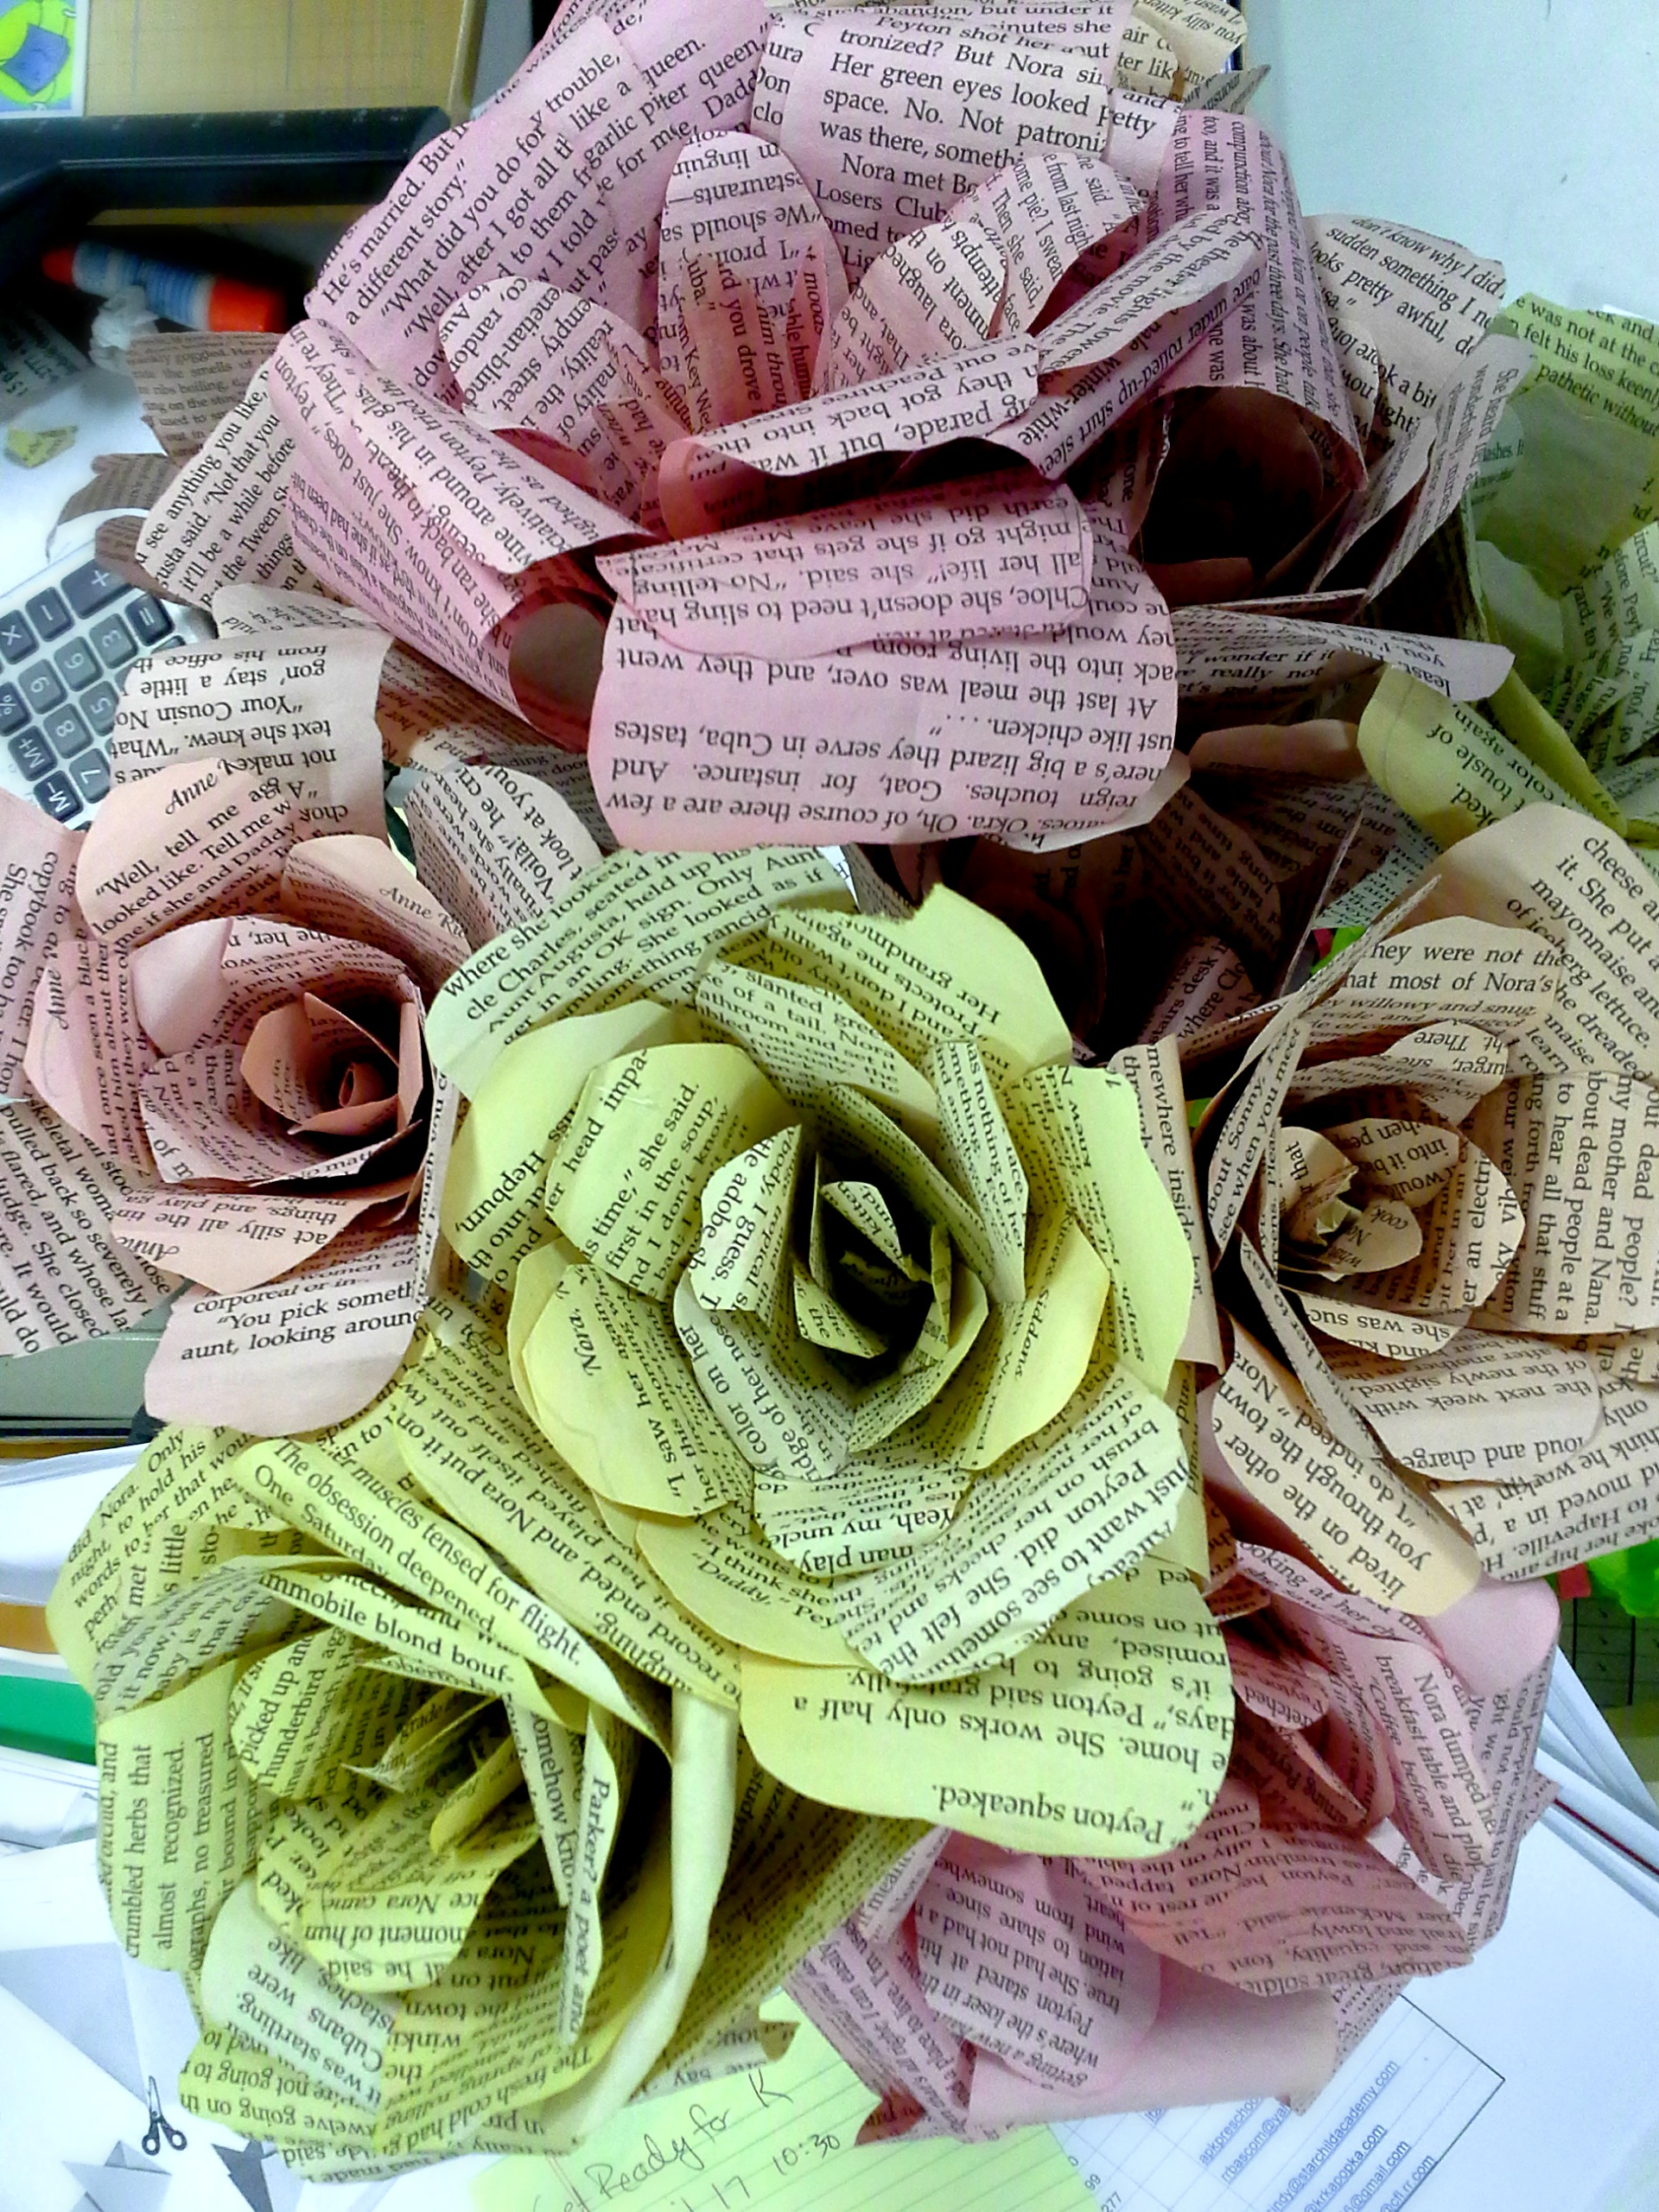 DIY Book Page Flower - how to make this beautiful paper rose bouquet from an old paperback book